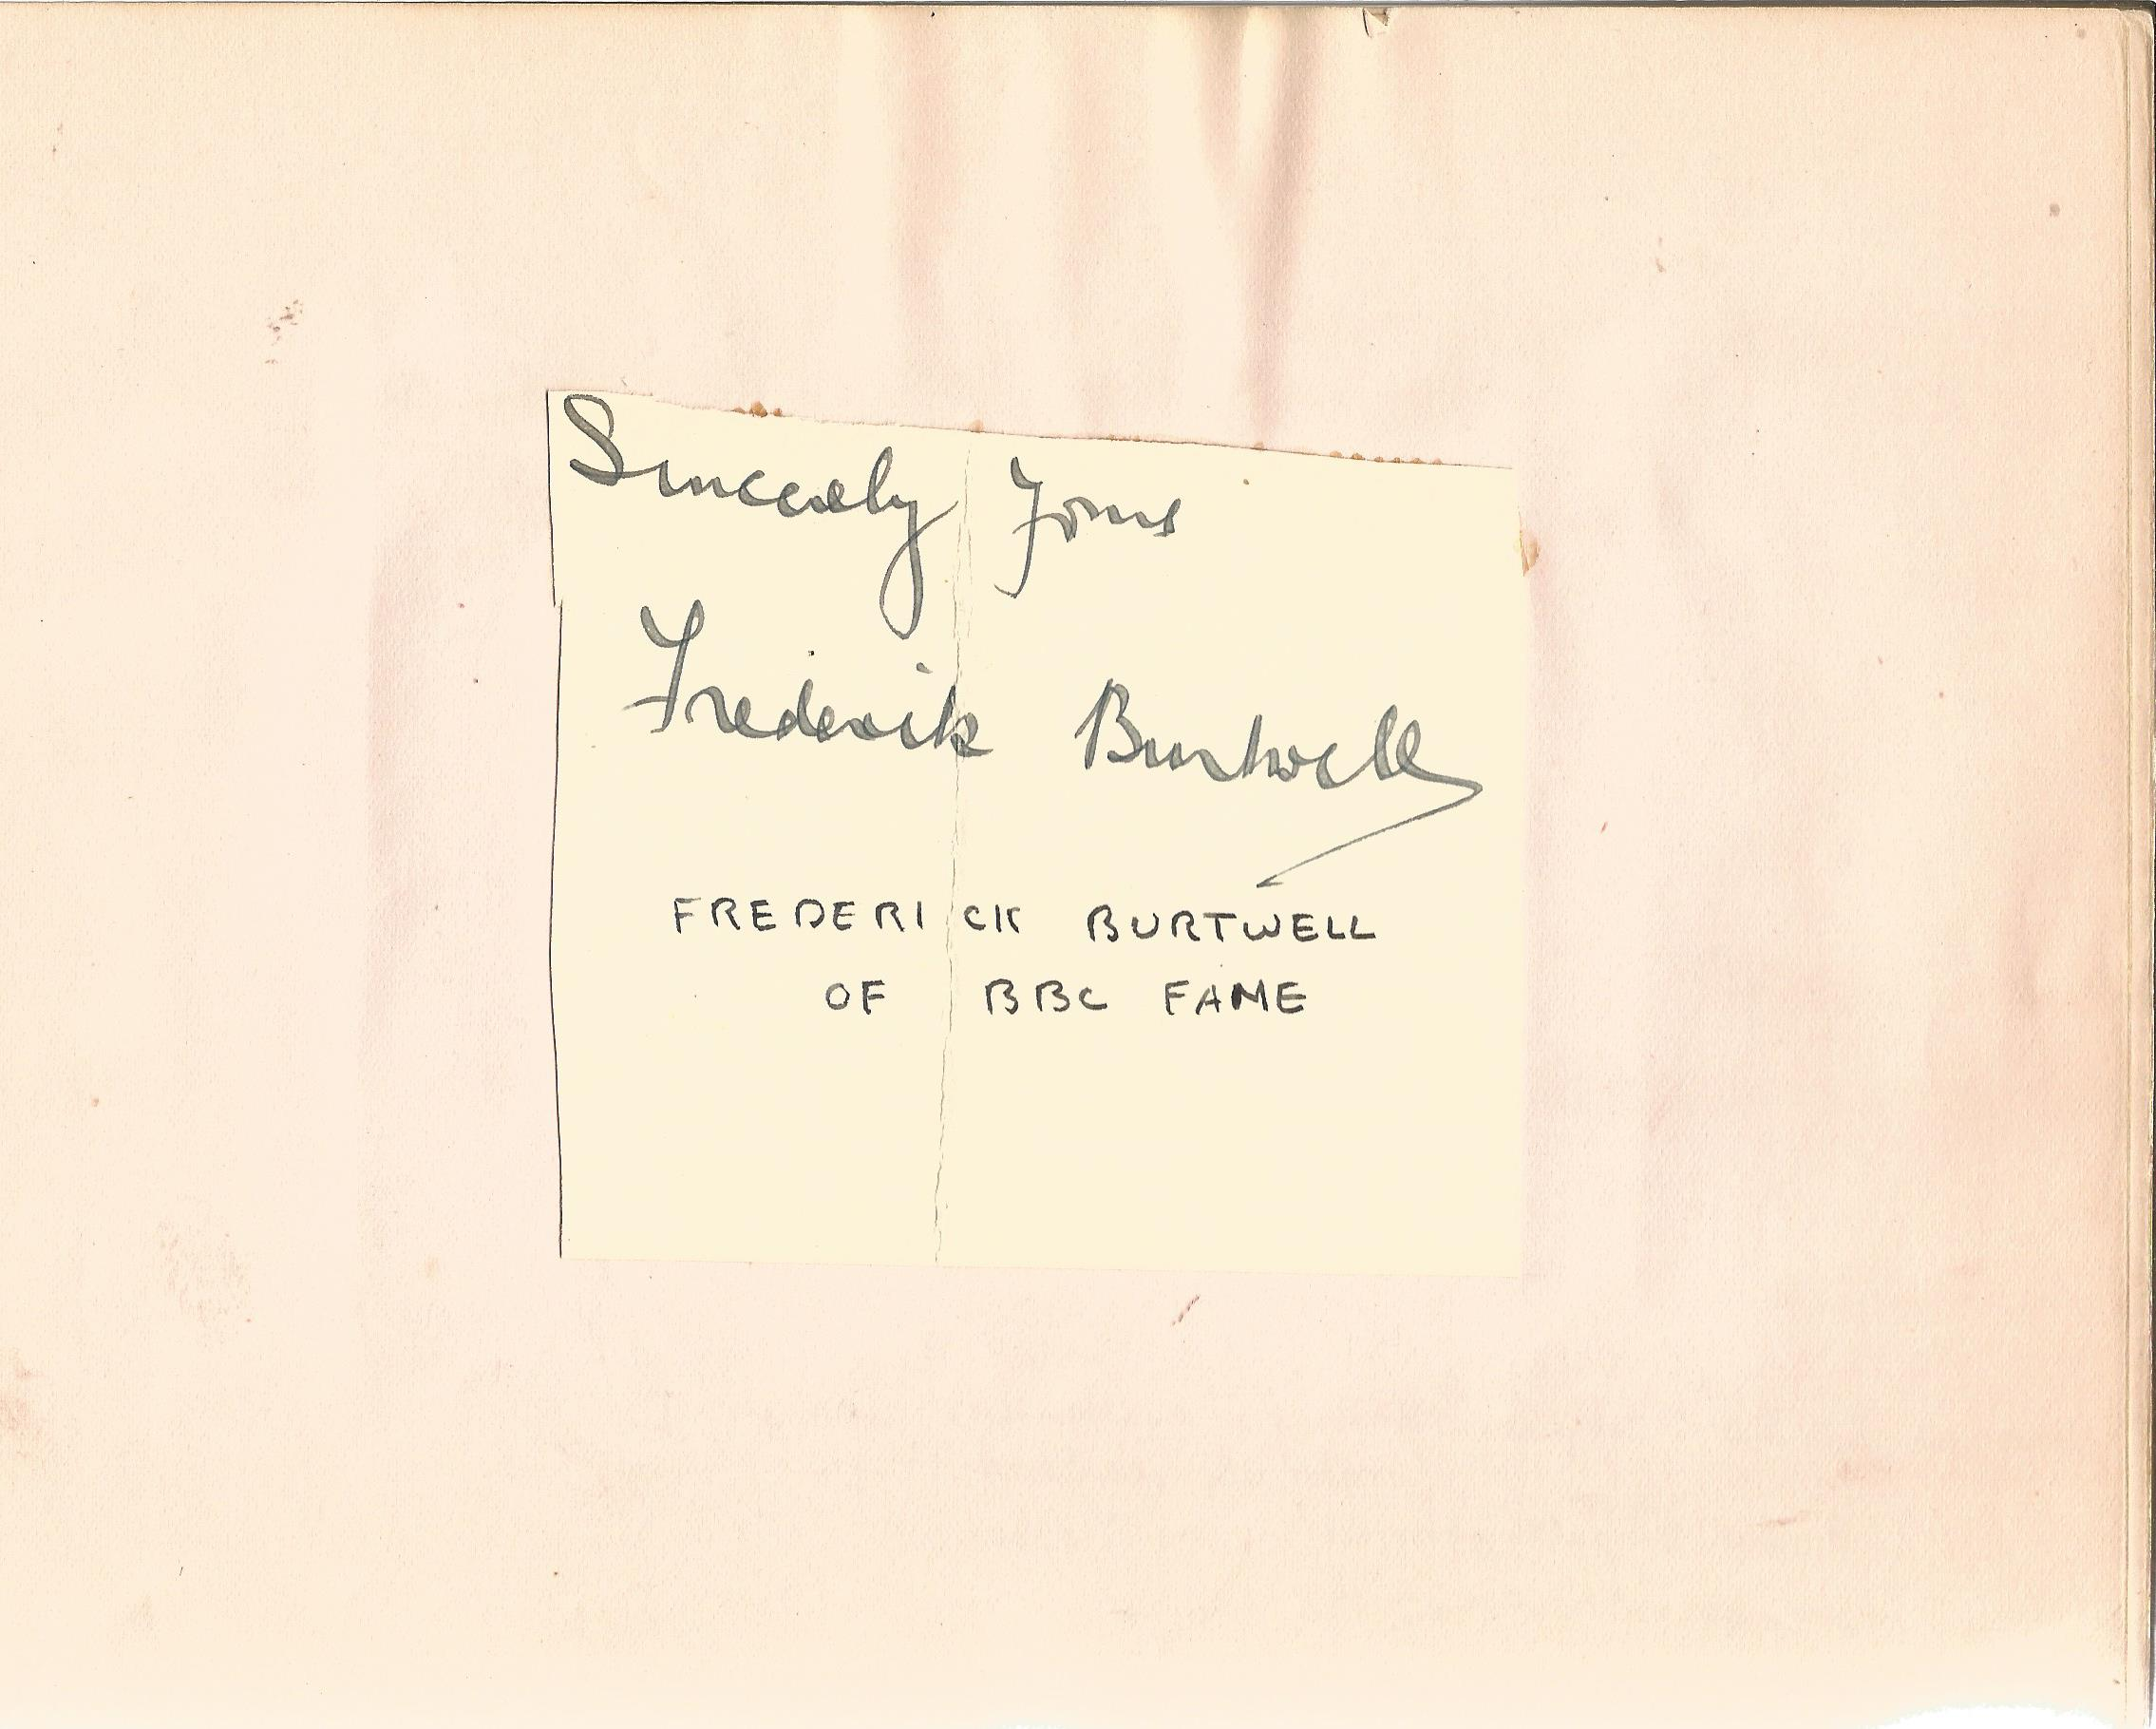 Literary autograph book collection includes some well-known names such as Sir Richard Terry, JB - Image 8 of 9